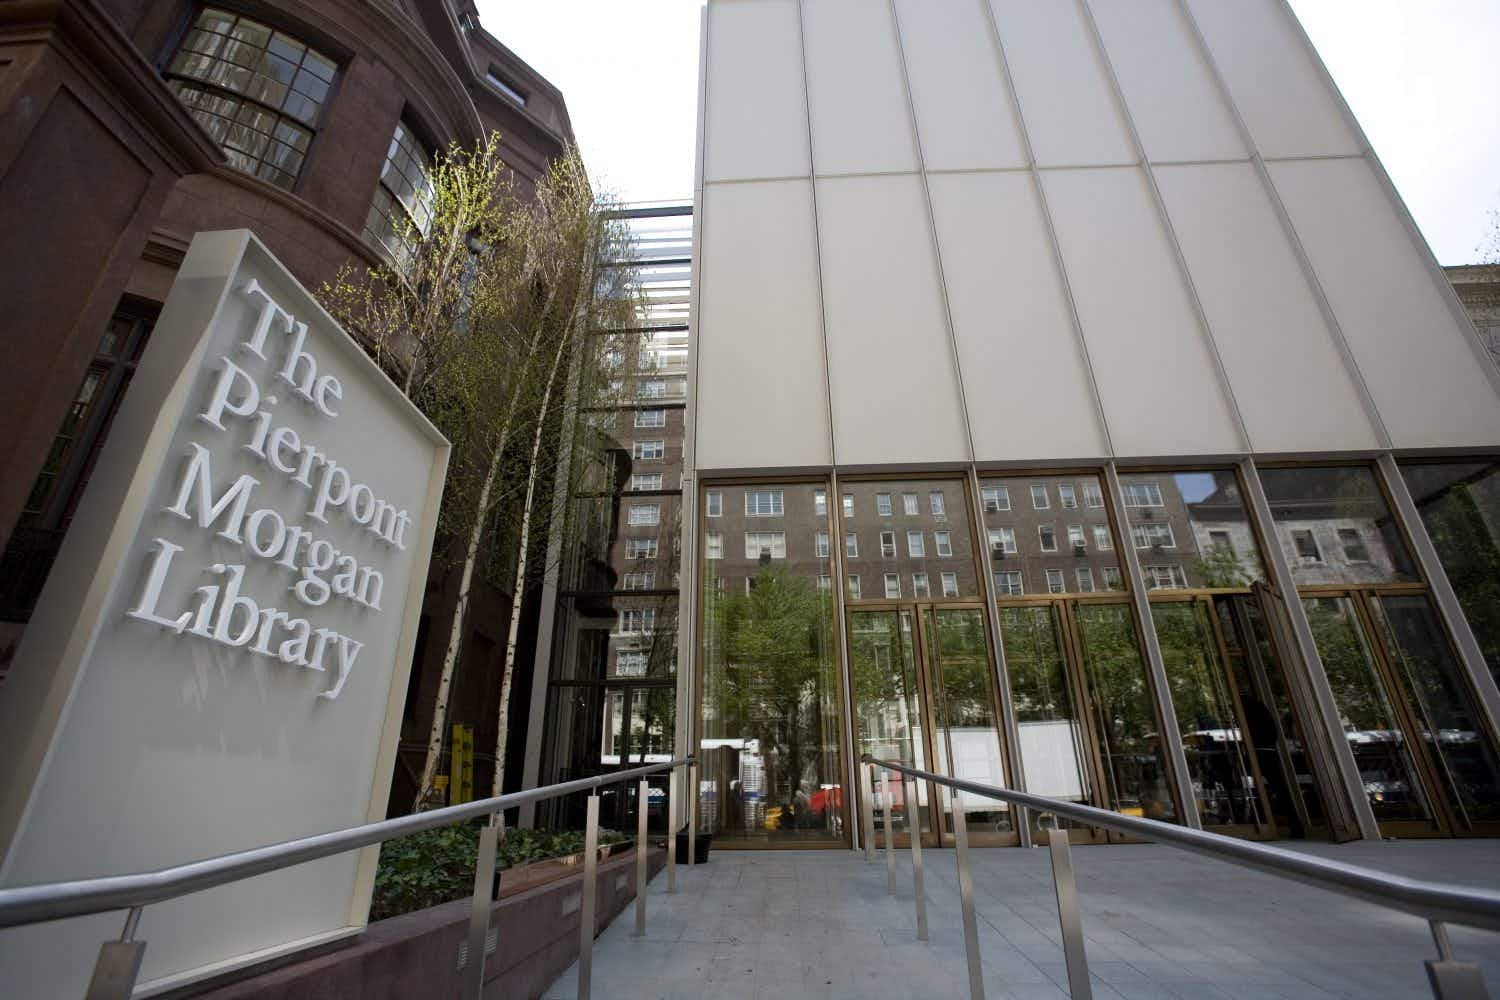 New York's Morgan Library is getting a new look